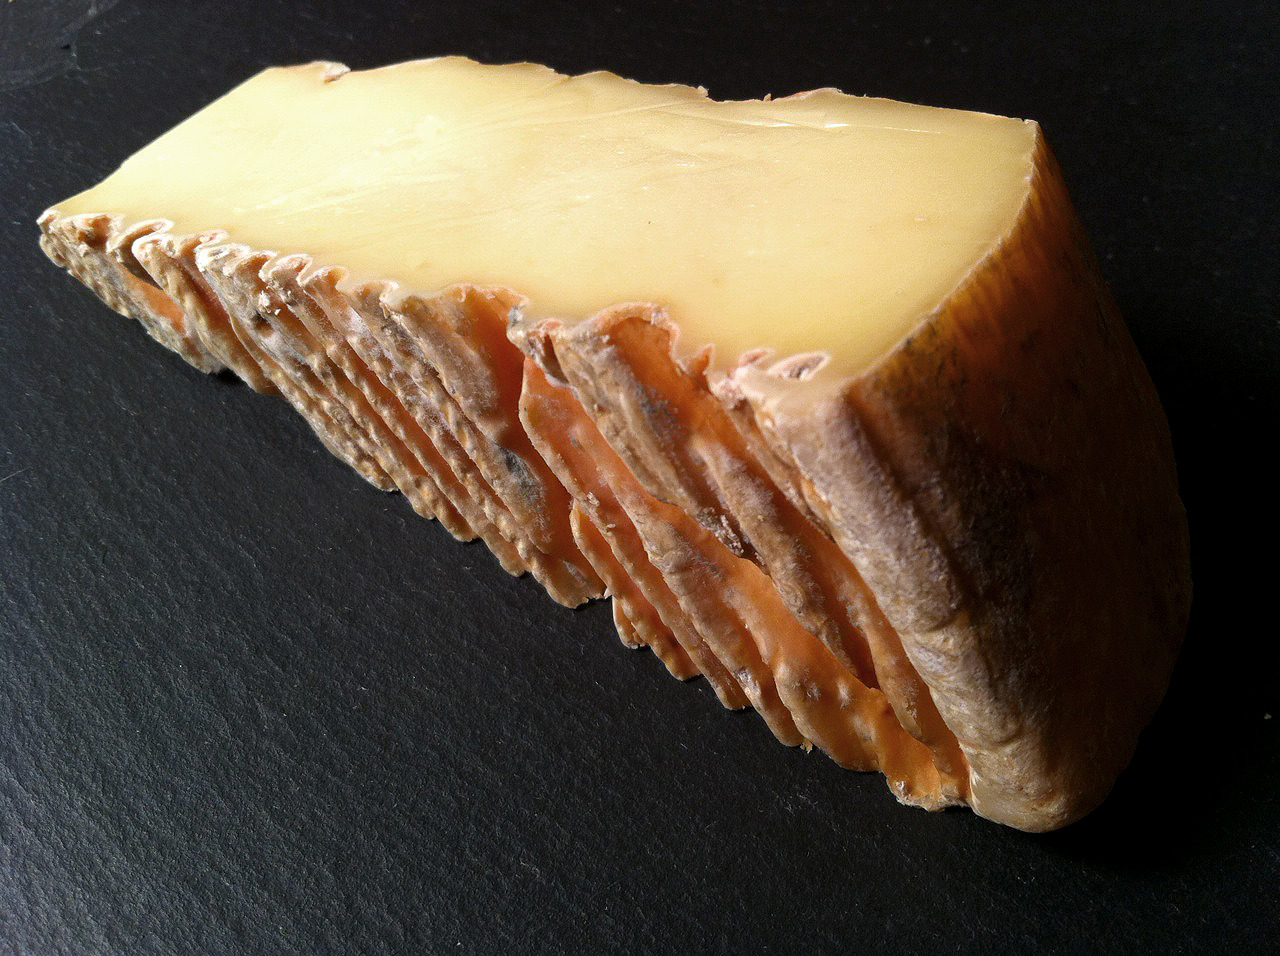 Tobasi, from Cricket Creek Farm in Williamstown, MA, is a Taleggio-style raw cow's milk washed rind cheese made in the heart of the rolling Berkshire hills. In 2002 Dick and Jude Sabot, hearing that the Cricket Creek Farm — the largest dairy farm in the Williamstown area — was up for sale, decided to purchase it, to protect it from encroaching development and preserve it as a working farm. A visit to Shelburne Farms in Vermont led to the decision to continue dairying and develop a cheesemaking program as well, while also converting the herd to pastured and grass-fed and moving the farm towards sustainable methods. Sadly, Dick Sabot passed away unexpectedly in 2005, but Jude and their son, Topher, have continued to develop the farm and expand the cheese offerings. Their Maggie's Round, an Italian-Toma-inspired cheese, won First Place at the 2011 American Cheese Society Competition in Montreal, and they have expanded the makes to include a bloomy-rind, Berkshire Bloom and the Tobasi (as well as fresh cheeses).